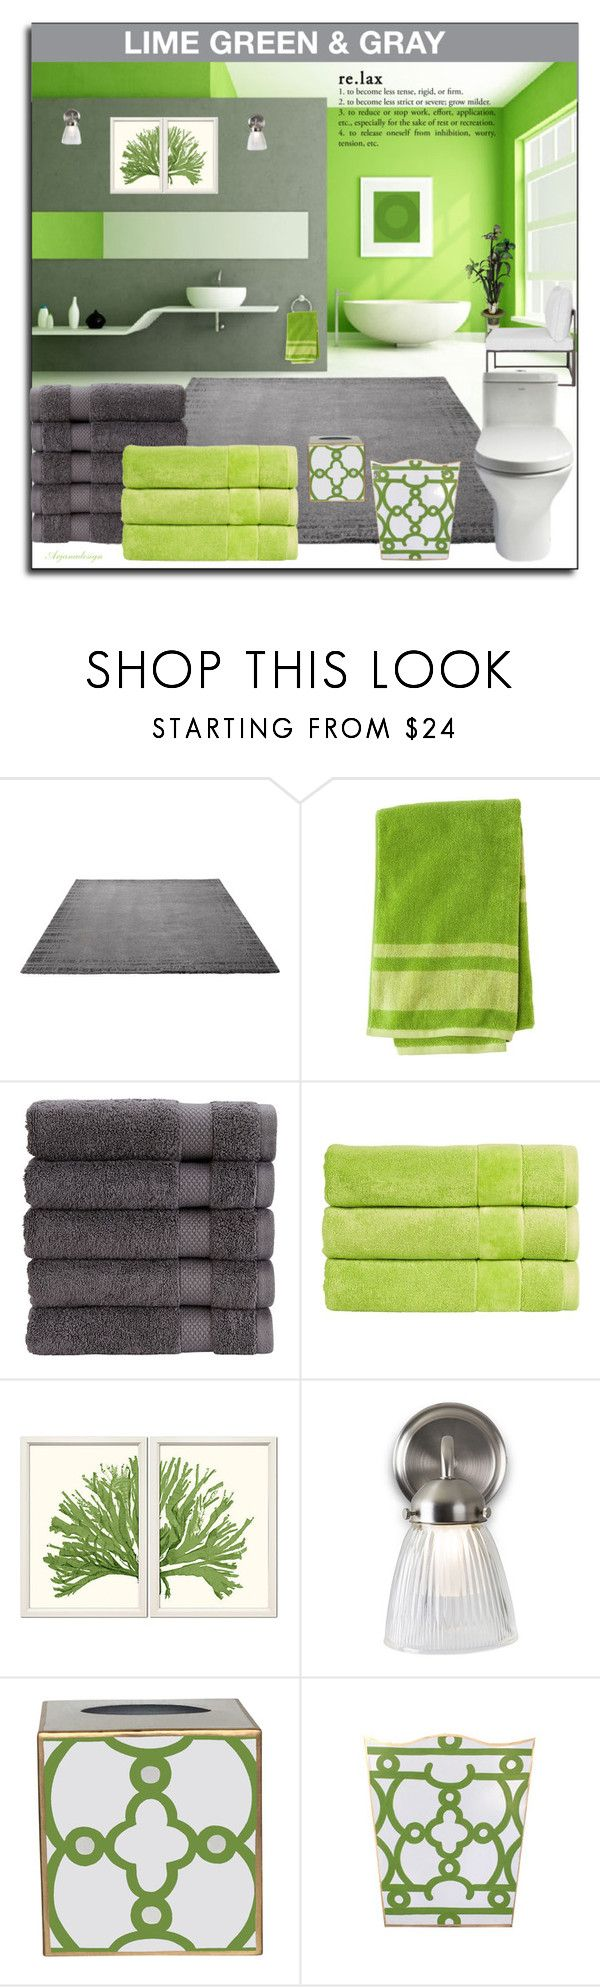 """""""BATHROOM COLOR CHALLENGE"""" by arjanadesign ❤ liked on Polyvore featuring interior, interiors, interior design, home, home decor, interior decorating, ESPRIT, Christy, William Stafford and Garden Trading"""